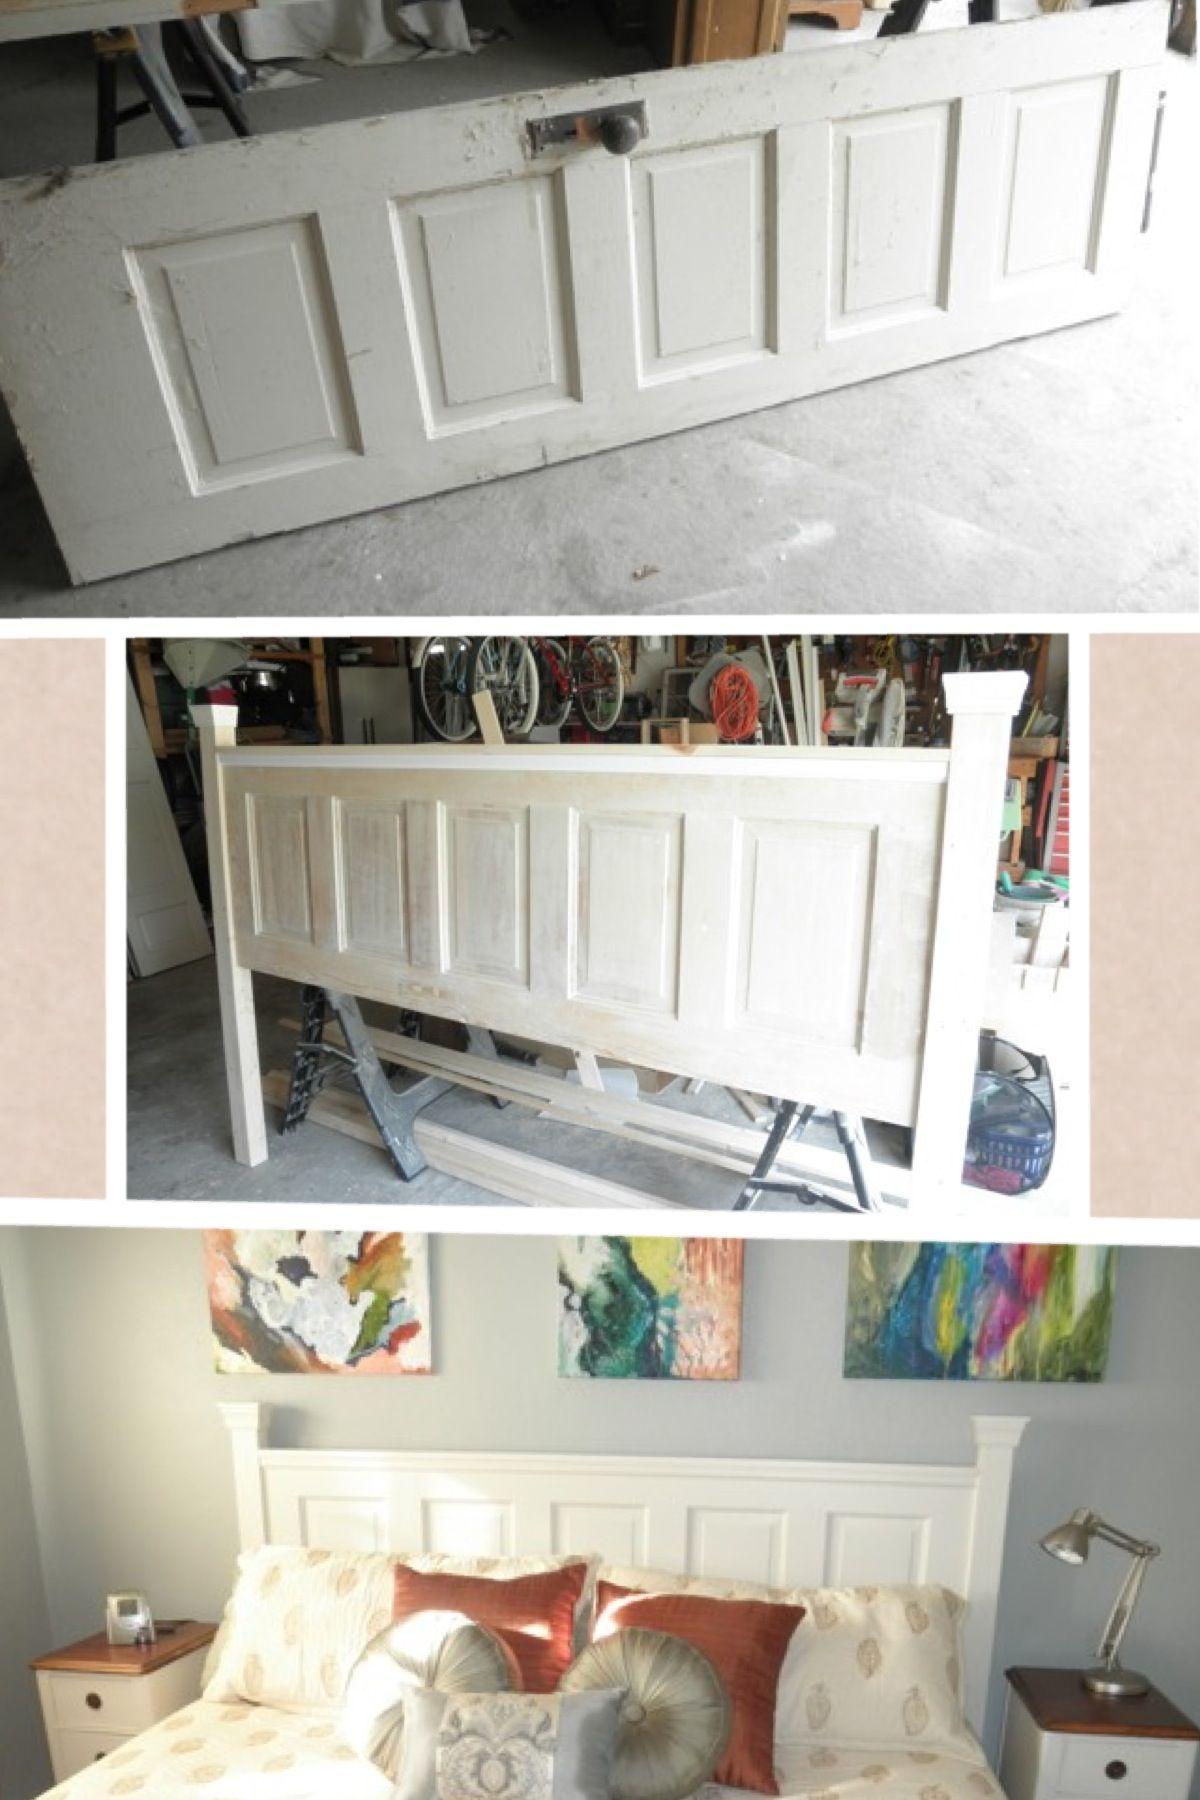 monterey headboards headboard queen wood beds with size images double white outstanding king